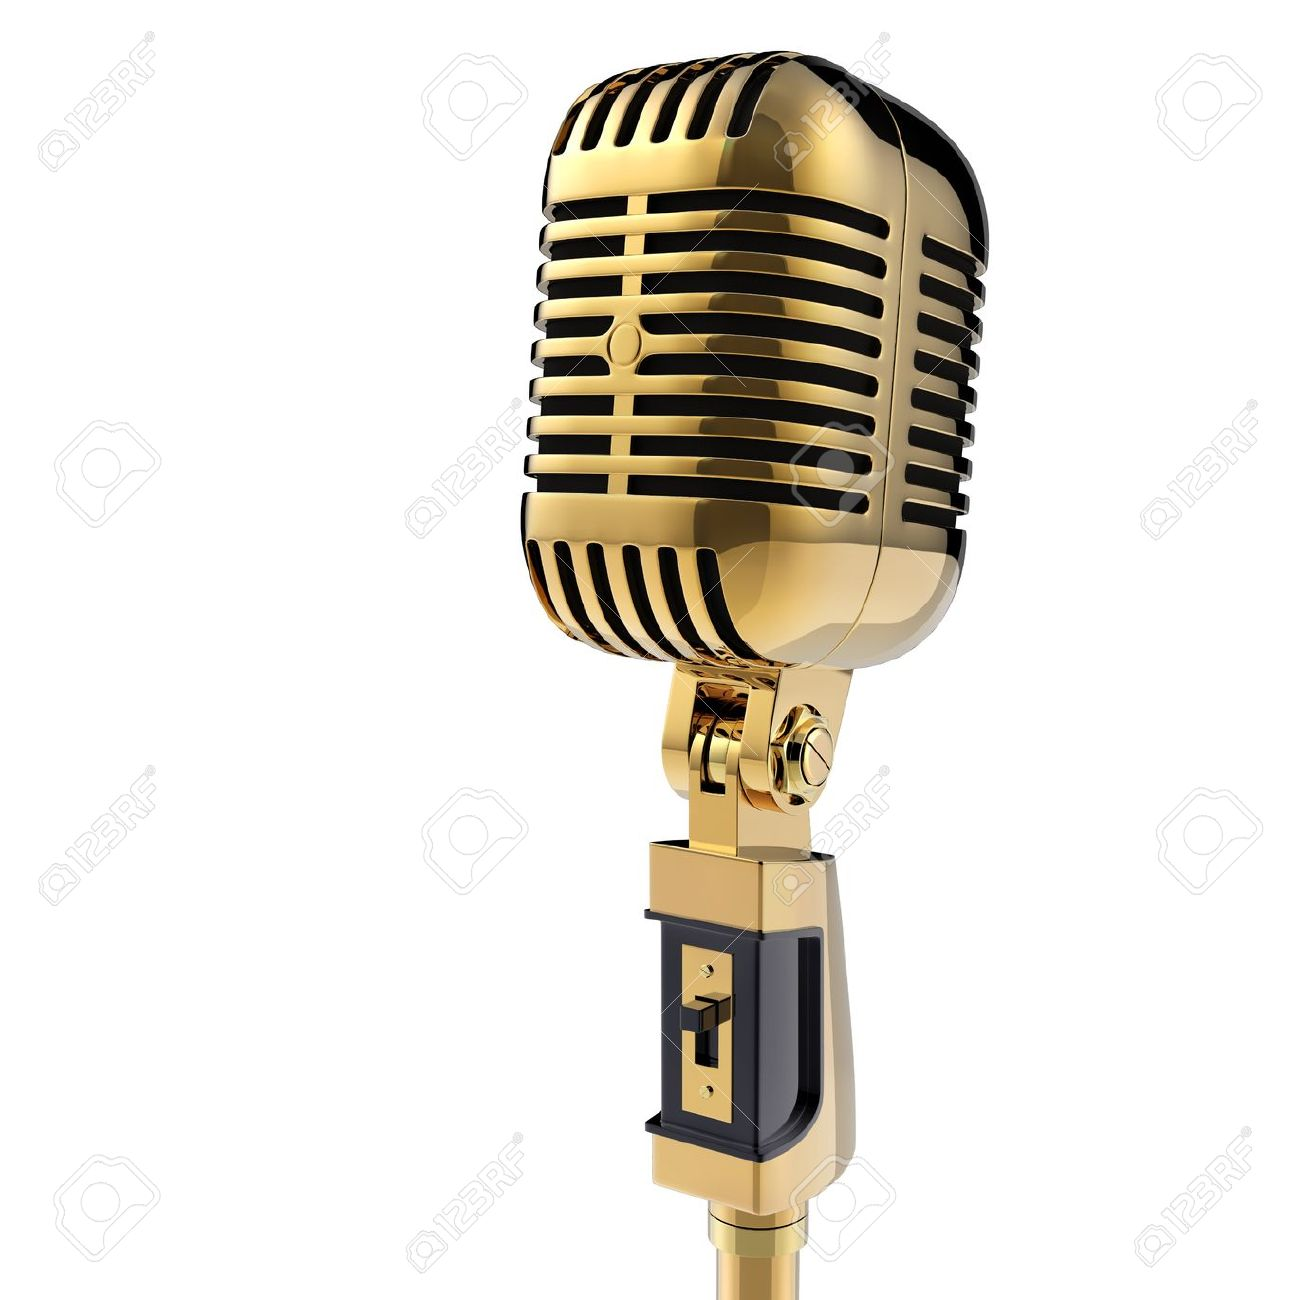 vintage microphone png images galleries with a bite. Black Bedroom Furniture Sets. Home Design Ideas